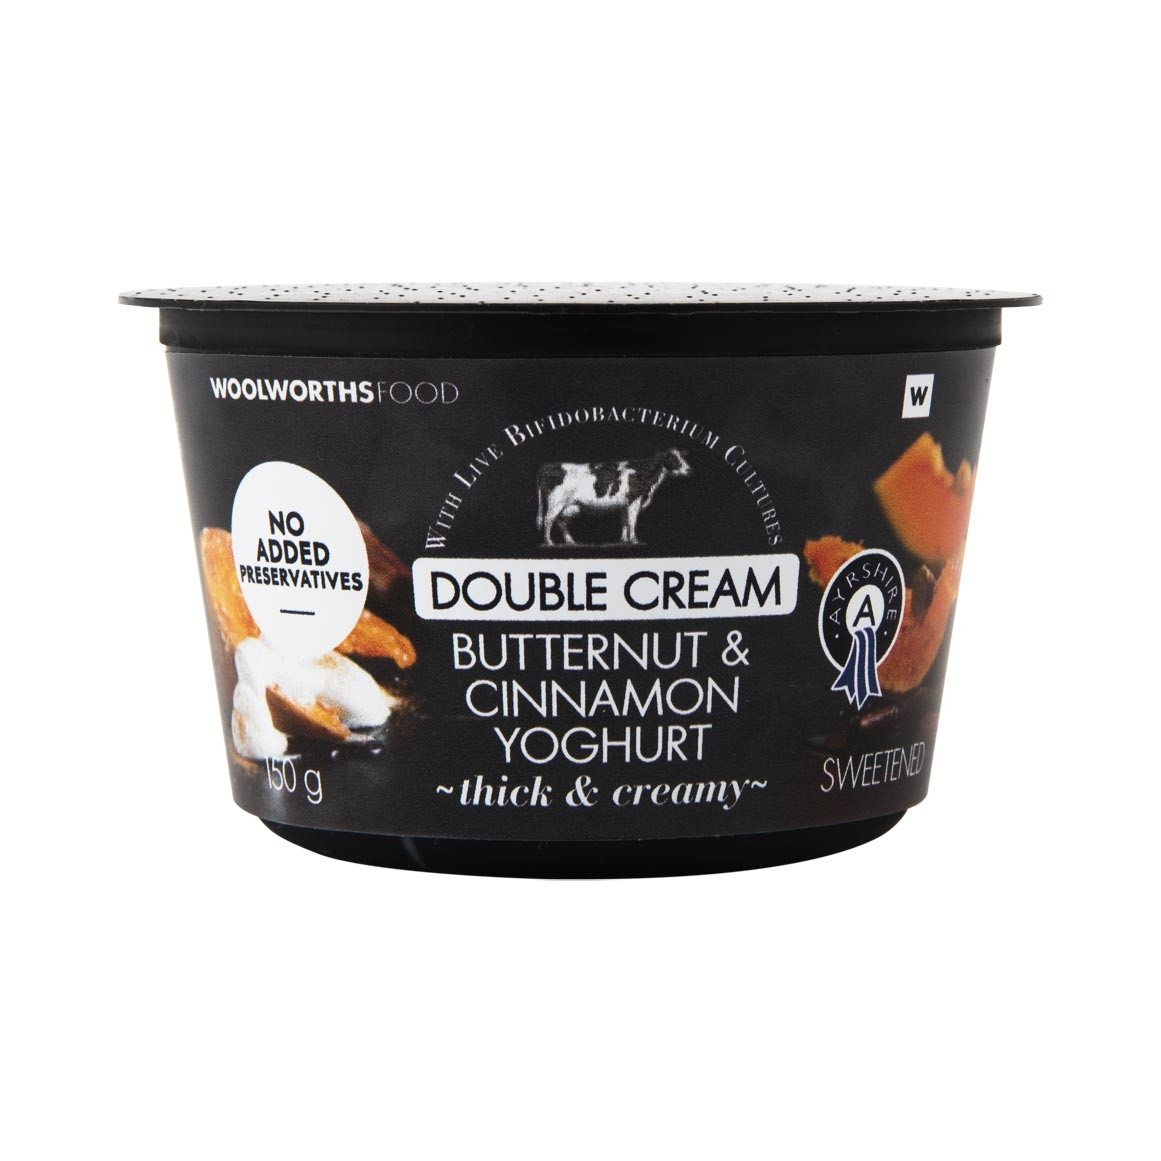 Double-Cream-Ayrshire-Butternut-Cinnamon-Yoghurt-150g-6009195999407